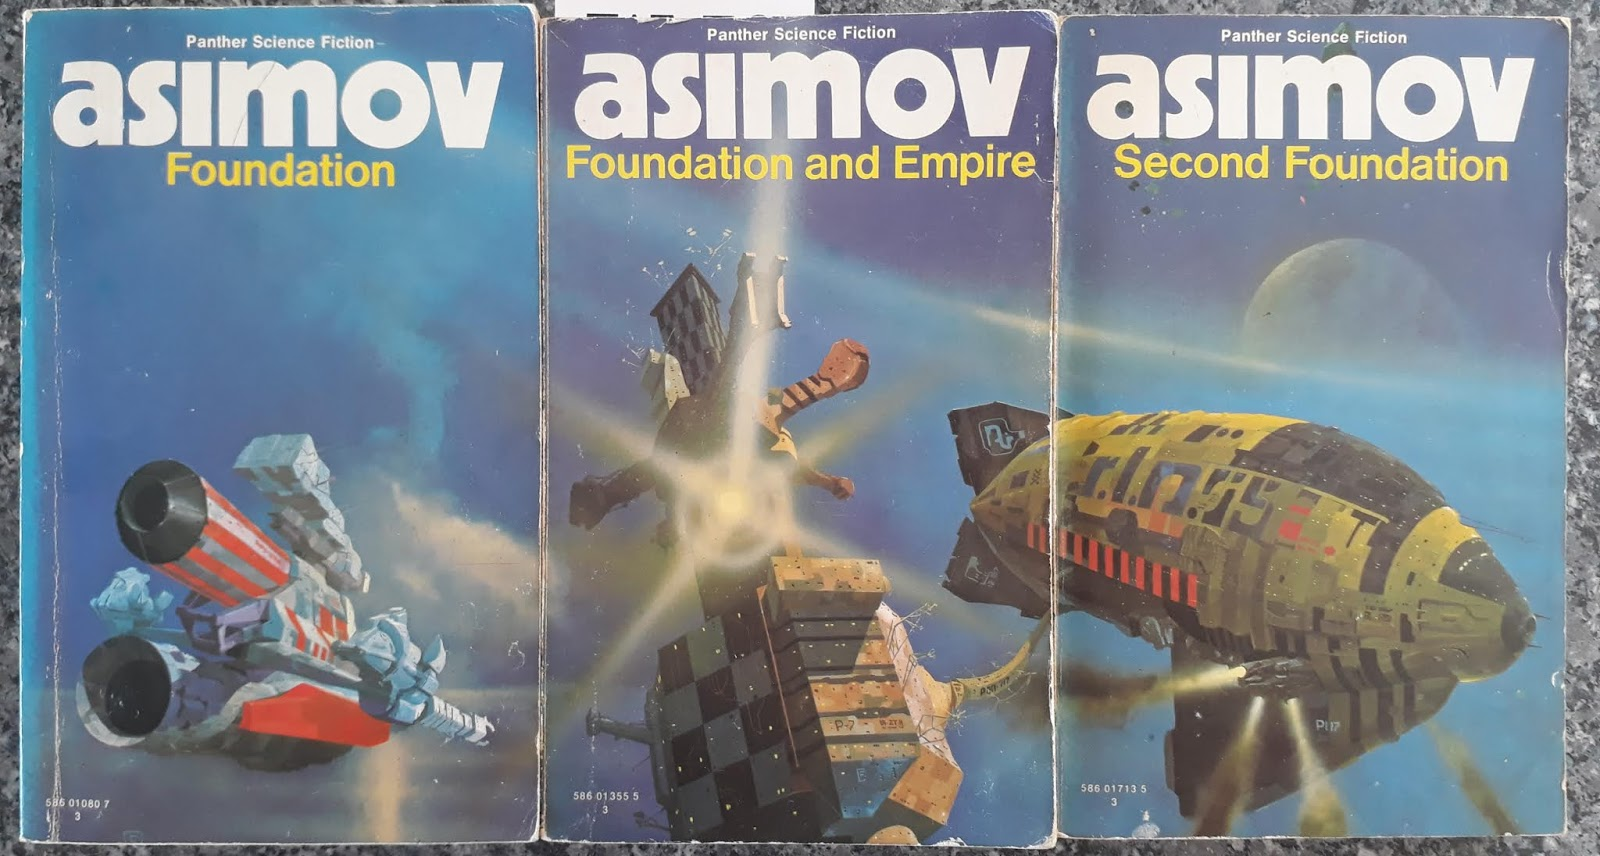 Foundation Trilogy, Isaac Asimov, Books, Science Fiction